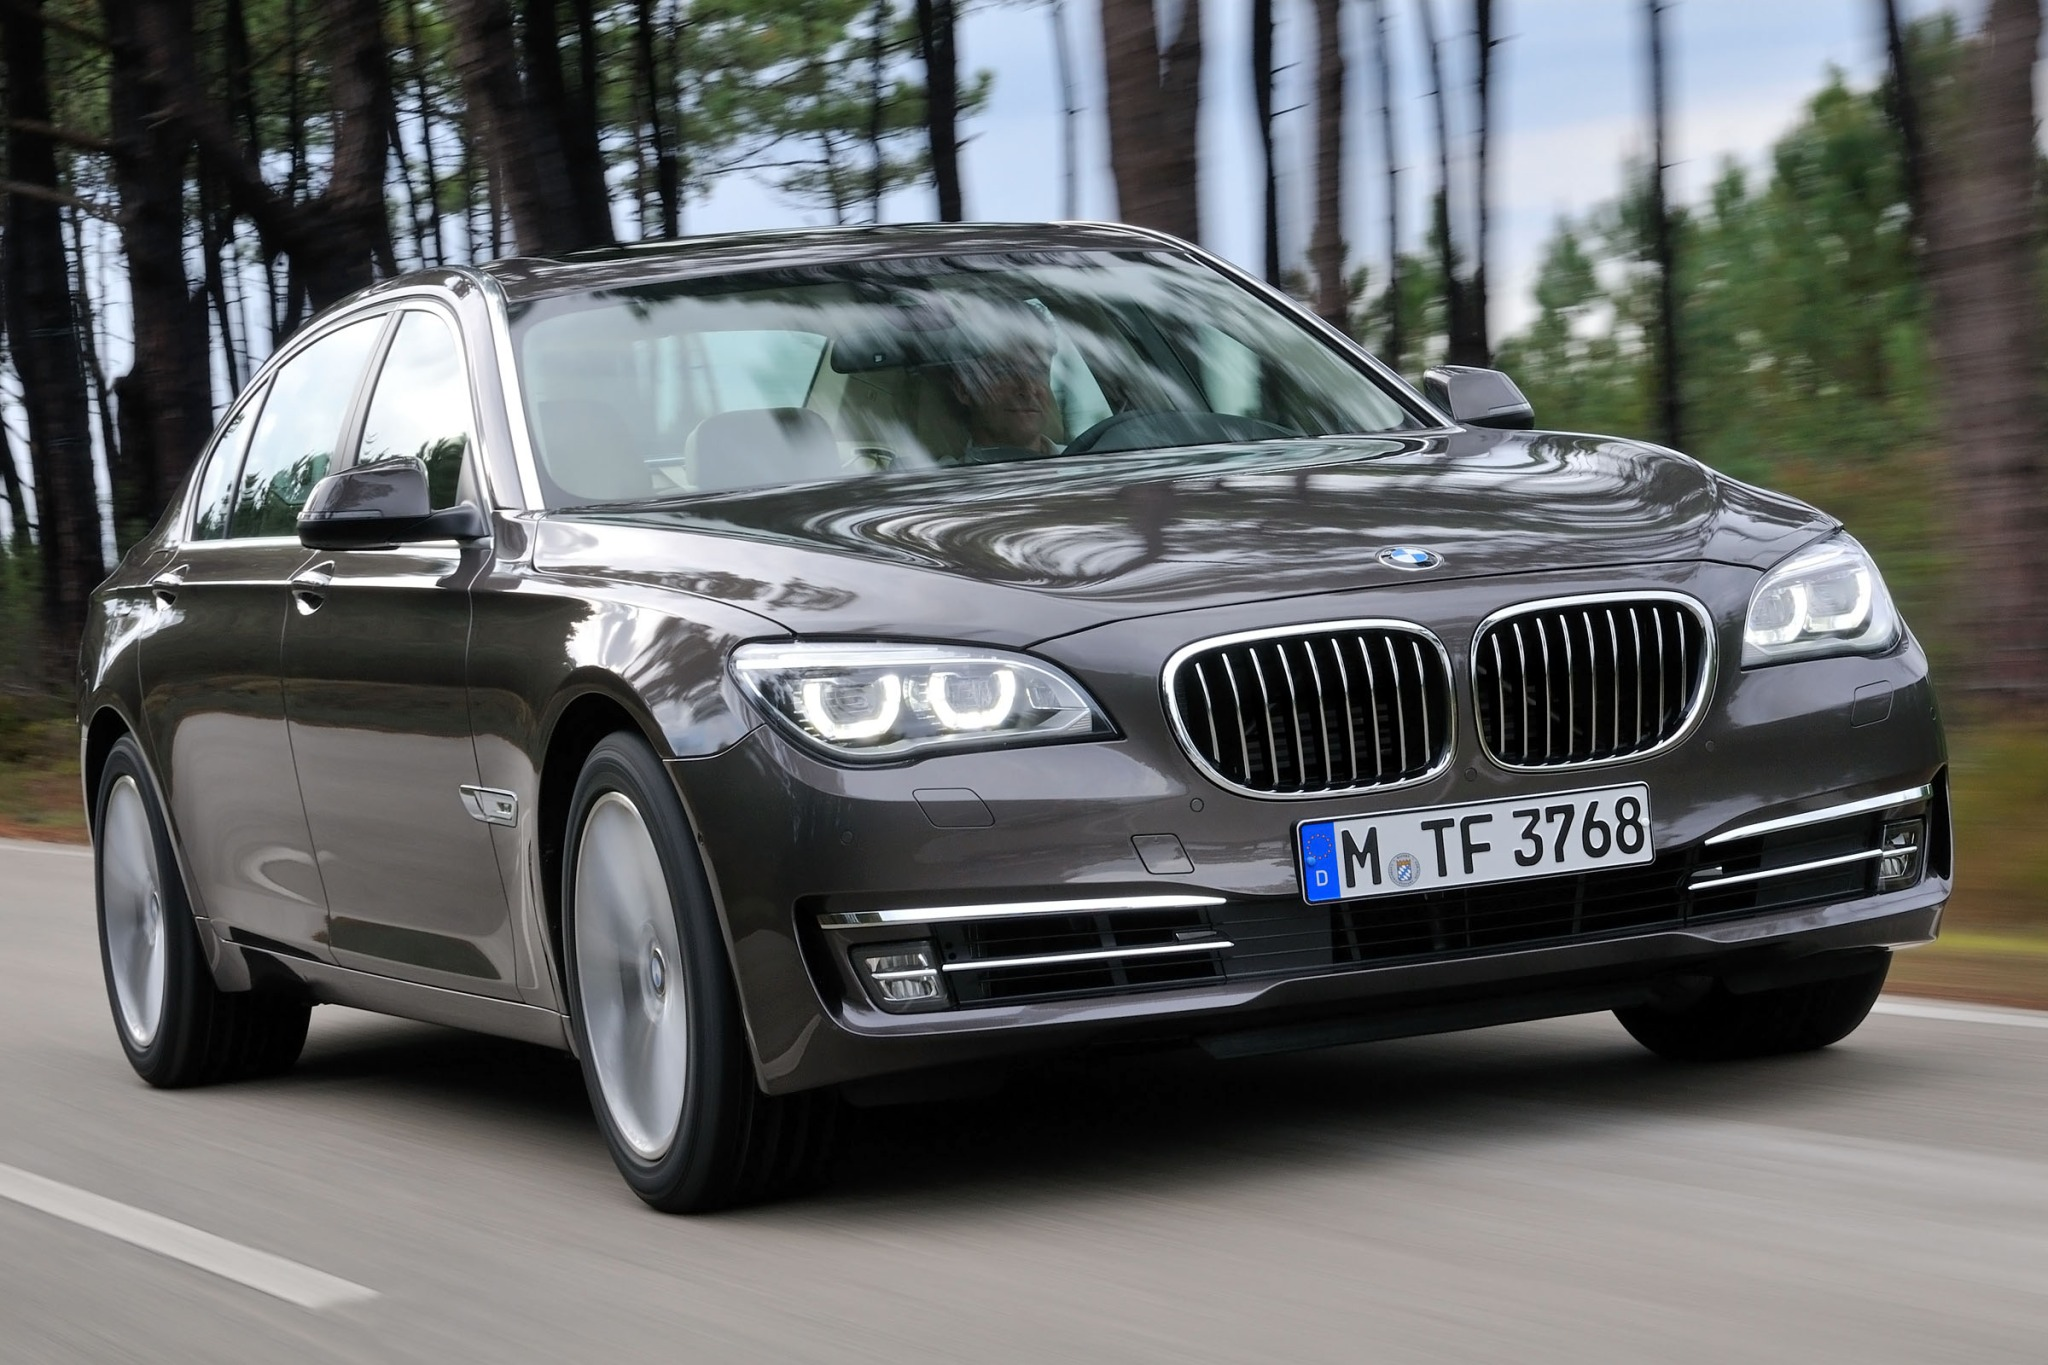 4 Series Sedan >> 2015 BMW 7 SERIES - Image #4